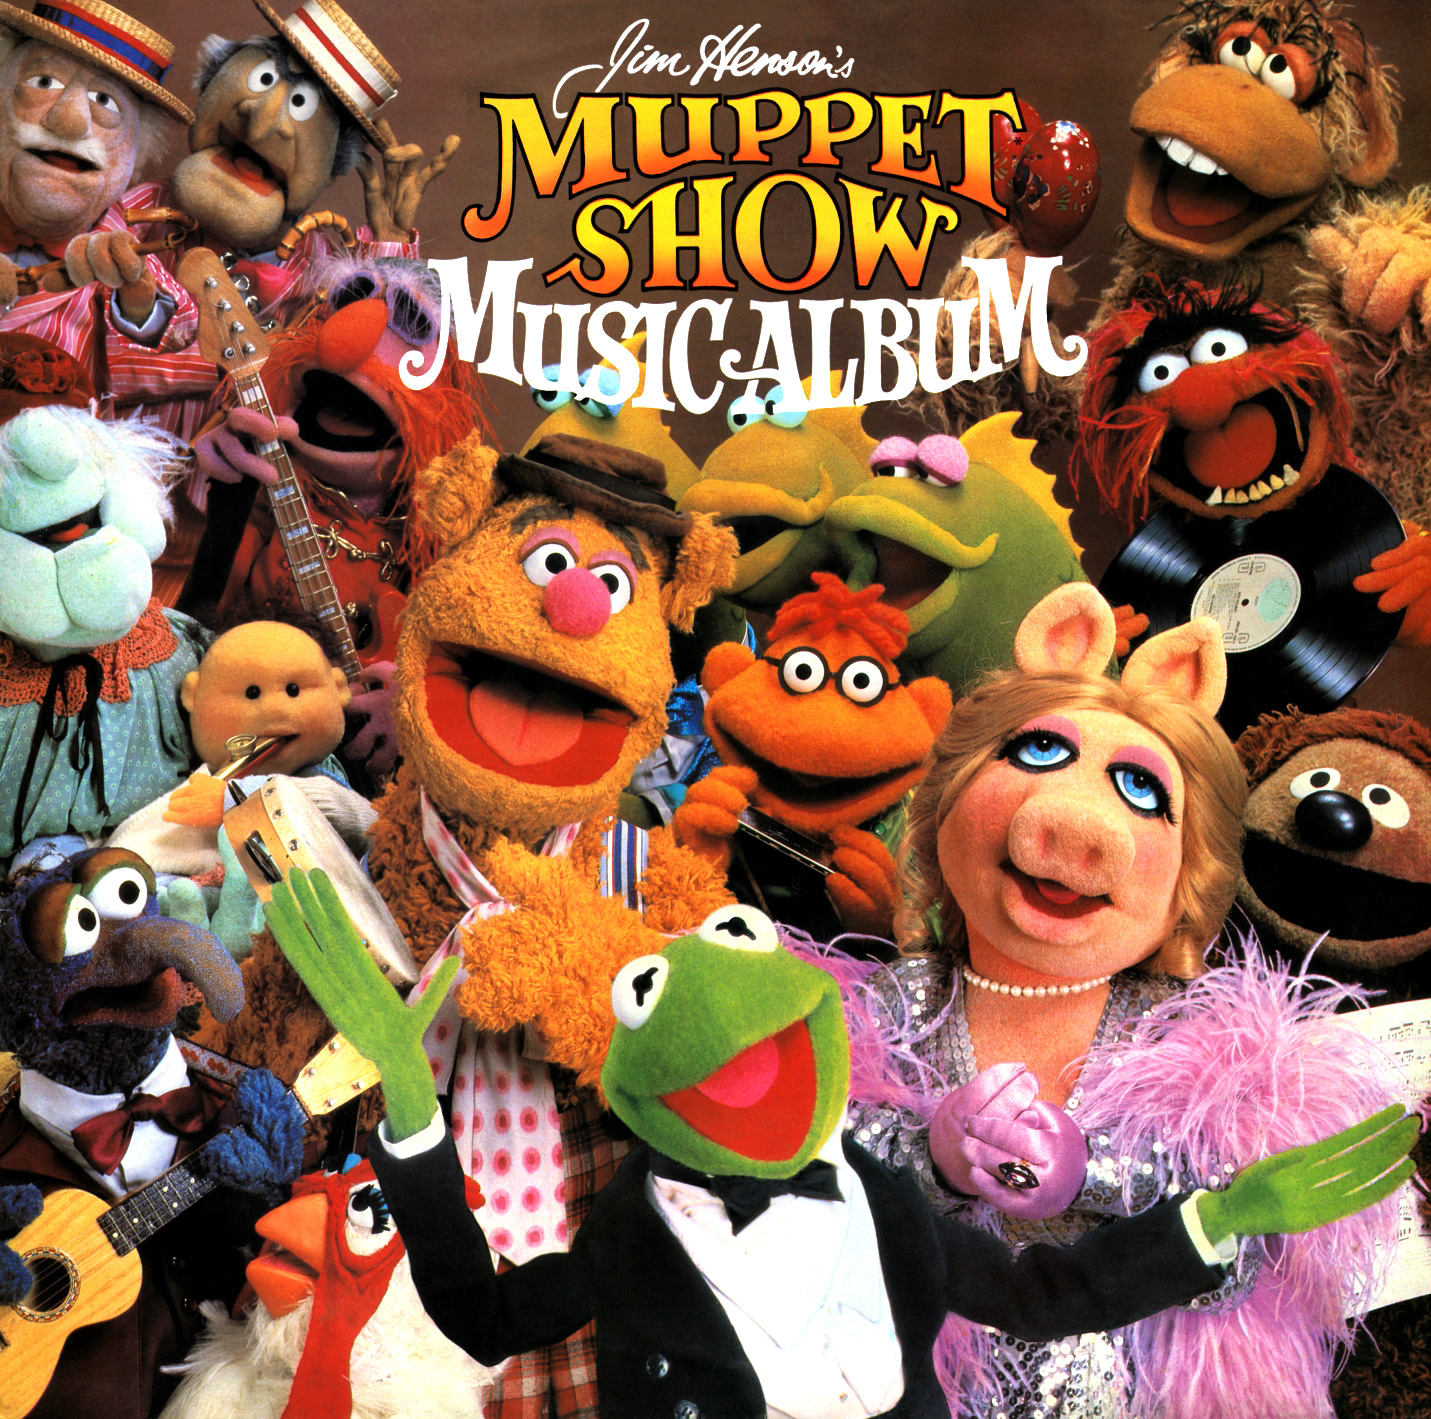 The Muppet Show Kermit the Frog and Friends